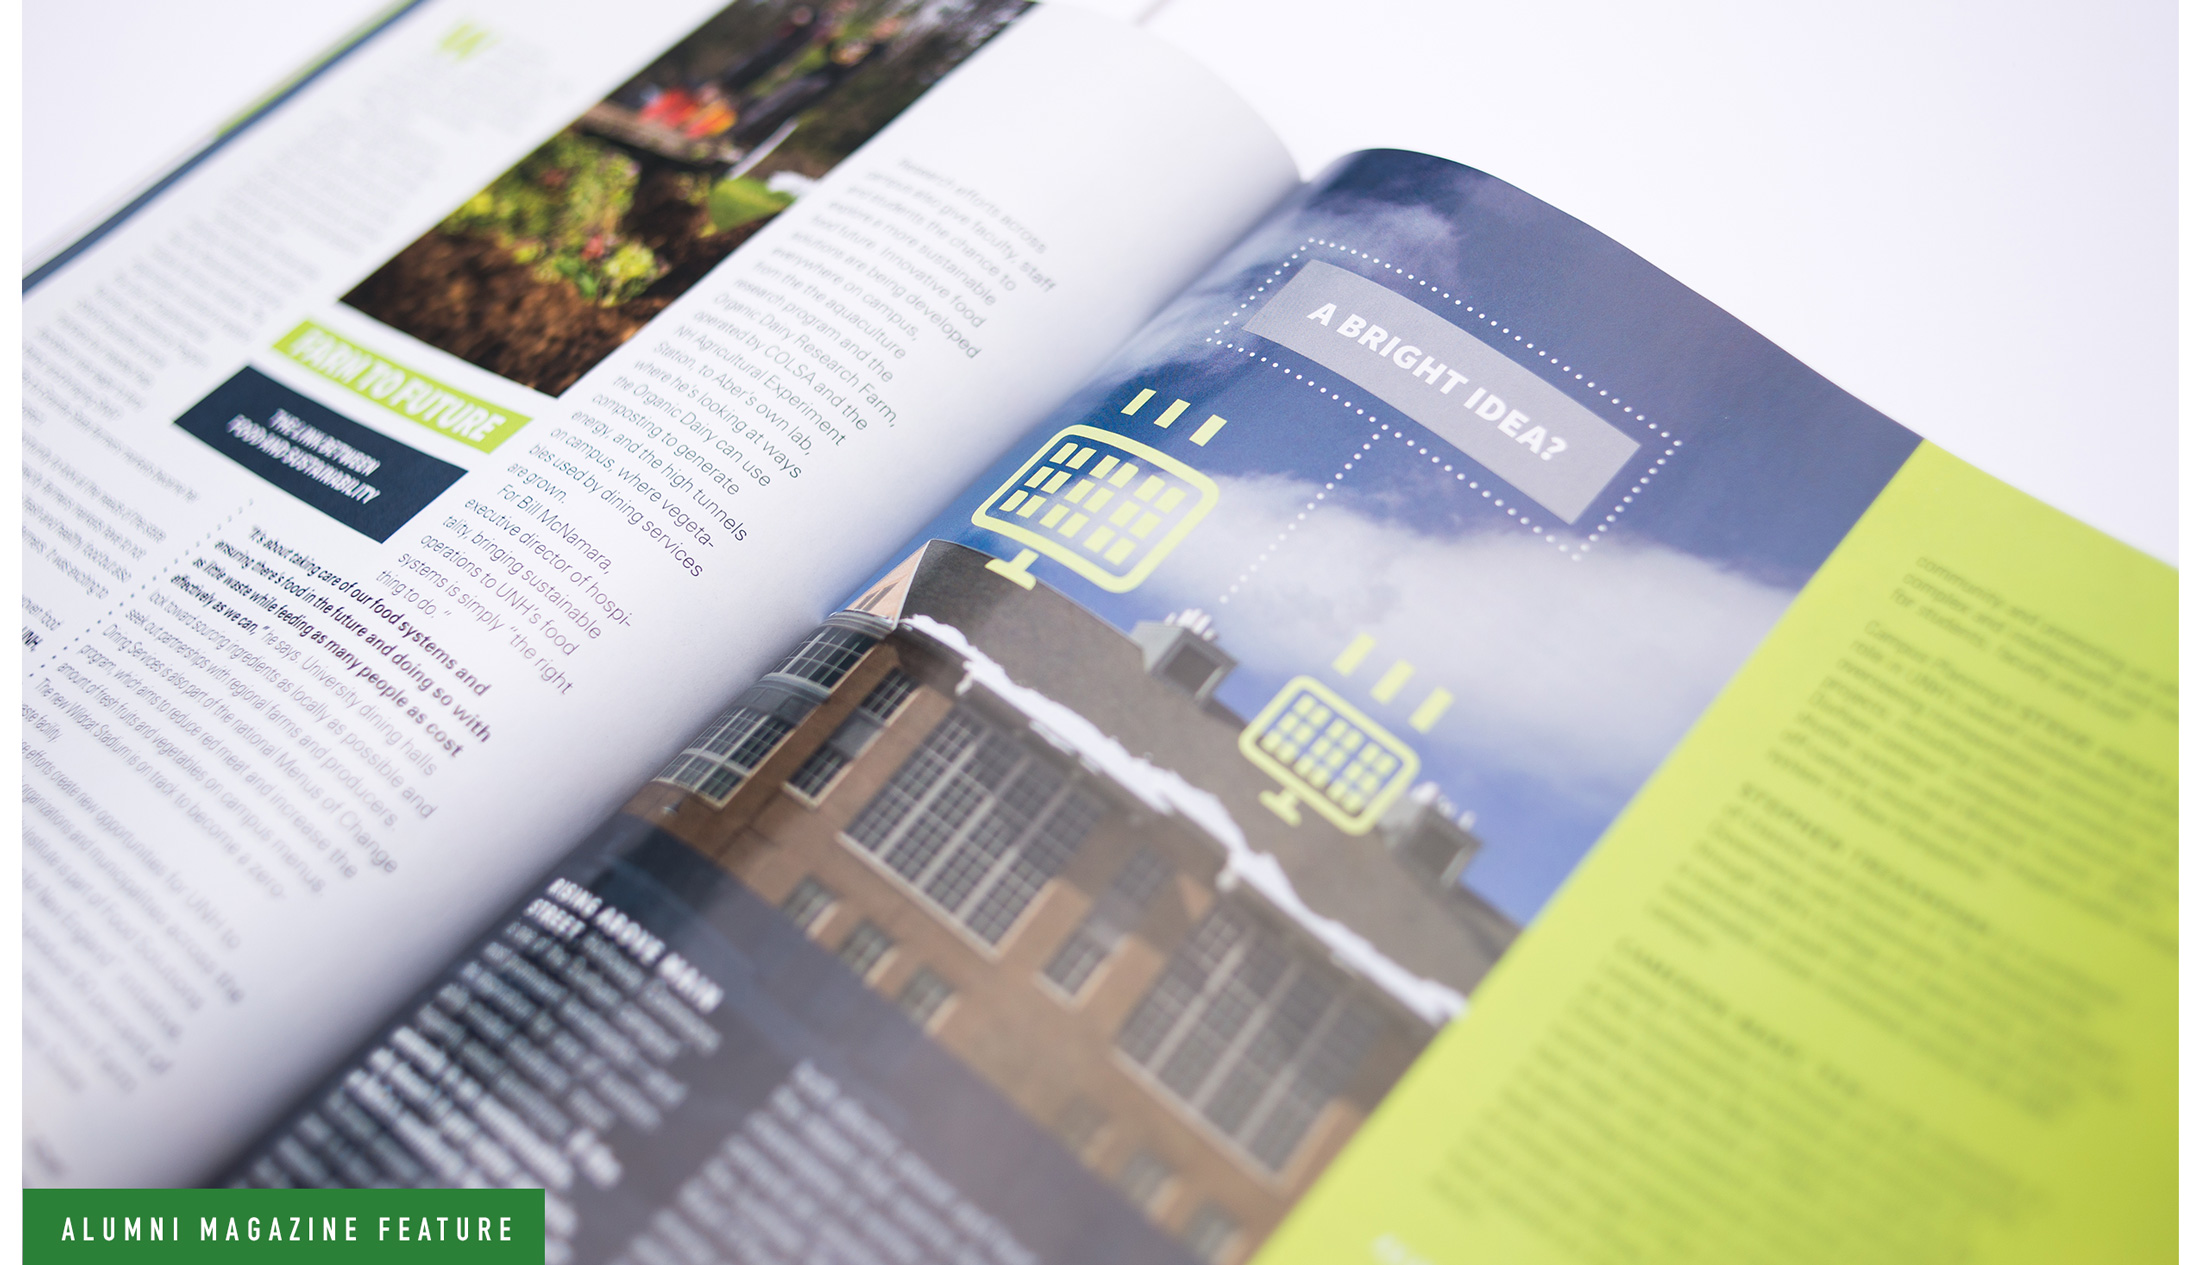 UNH Alumni Magazine Sustainability Feature Spread 1 Design and Illustration - Loren Marple